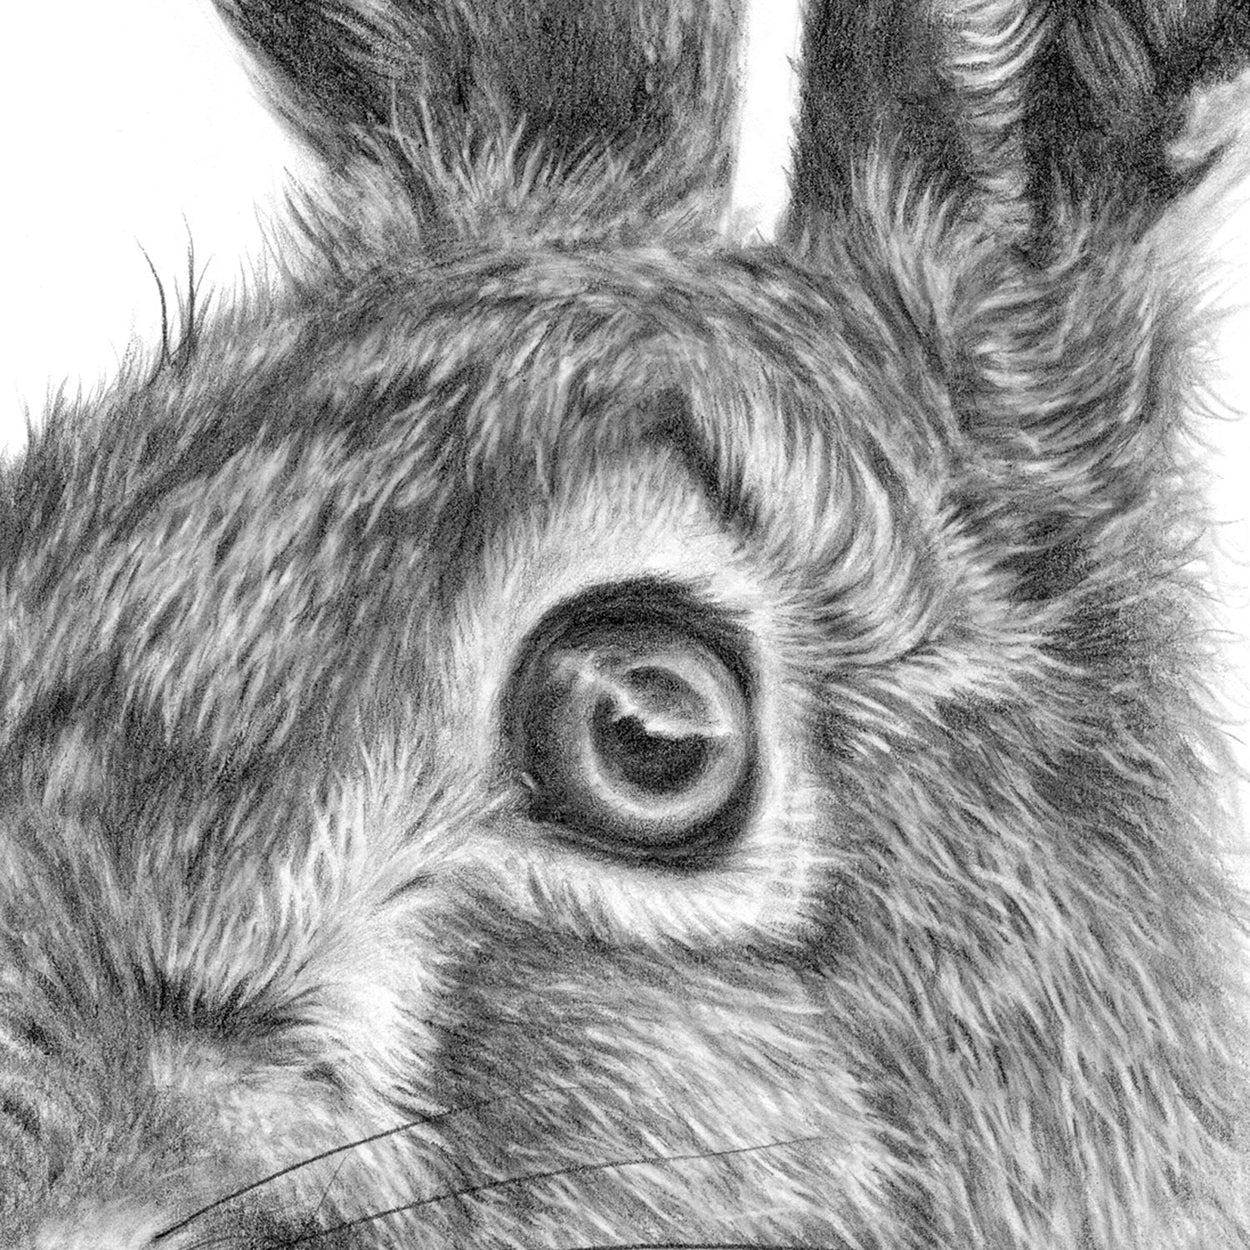 Hare Drawing Eye Close-up - The Thriving Wild